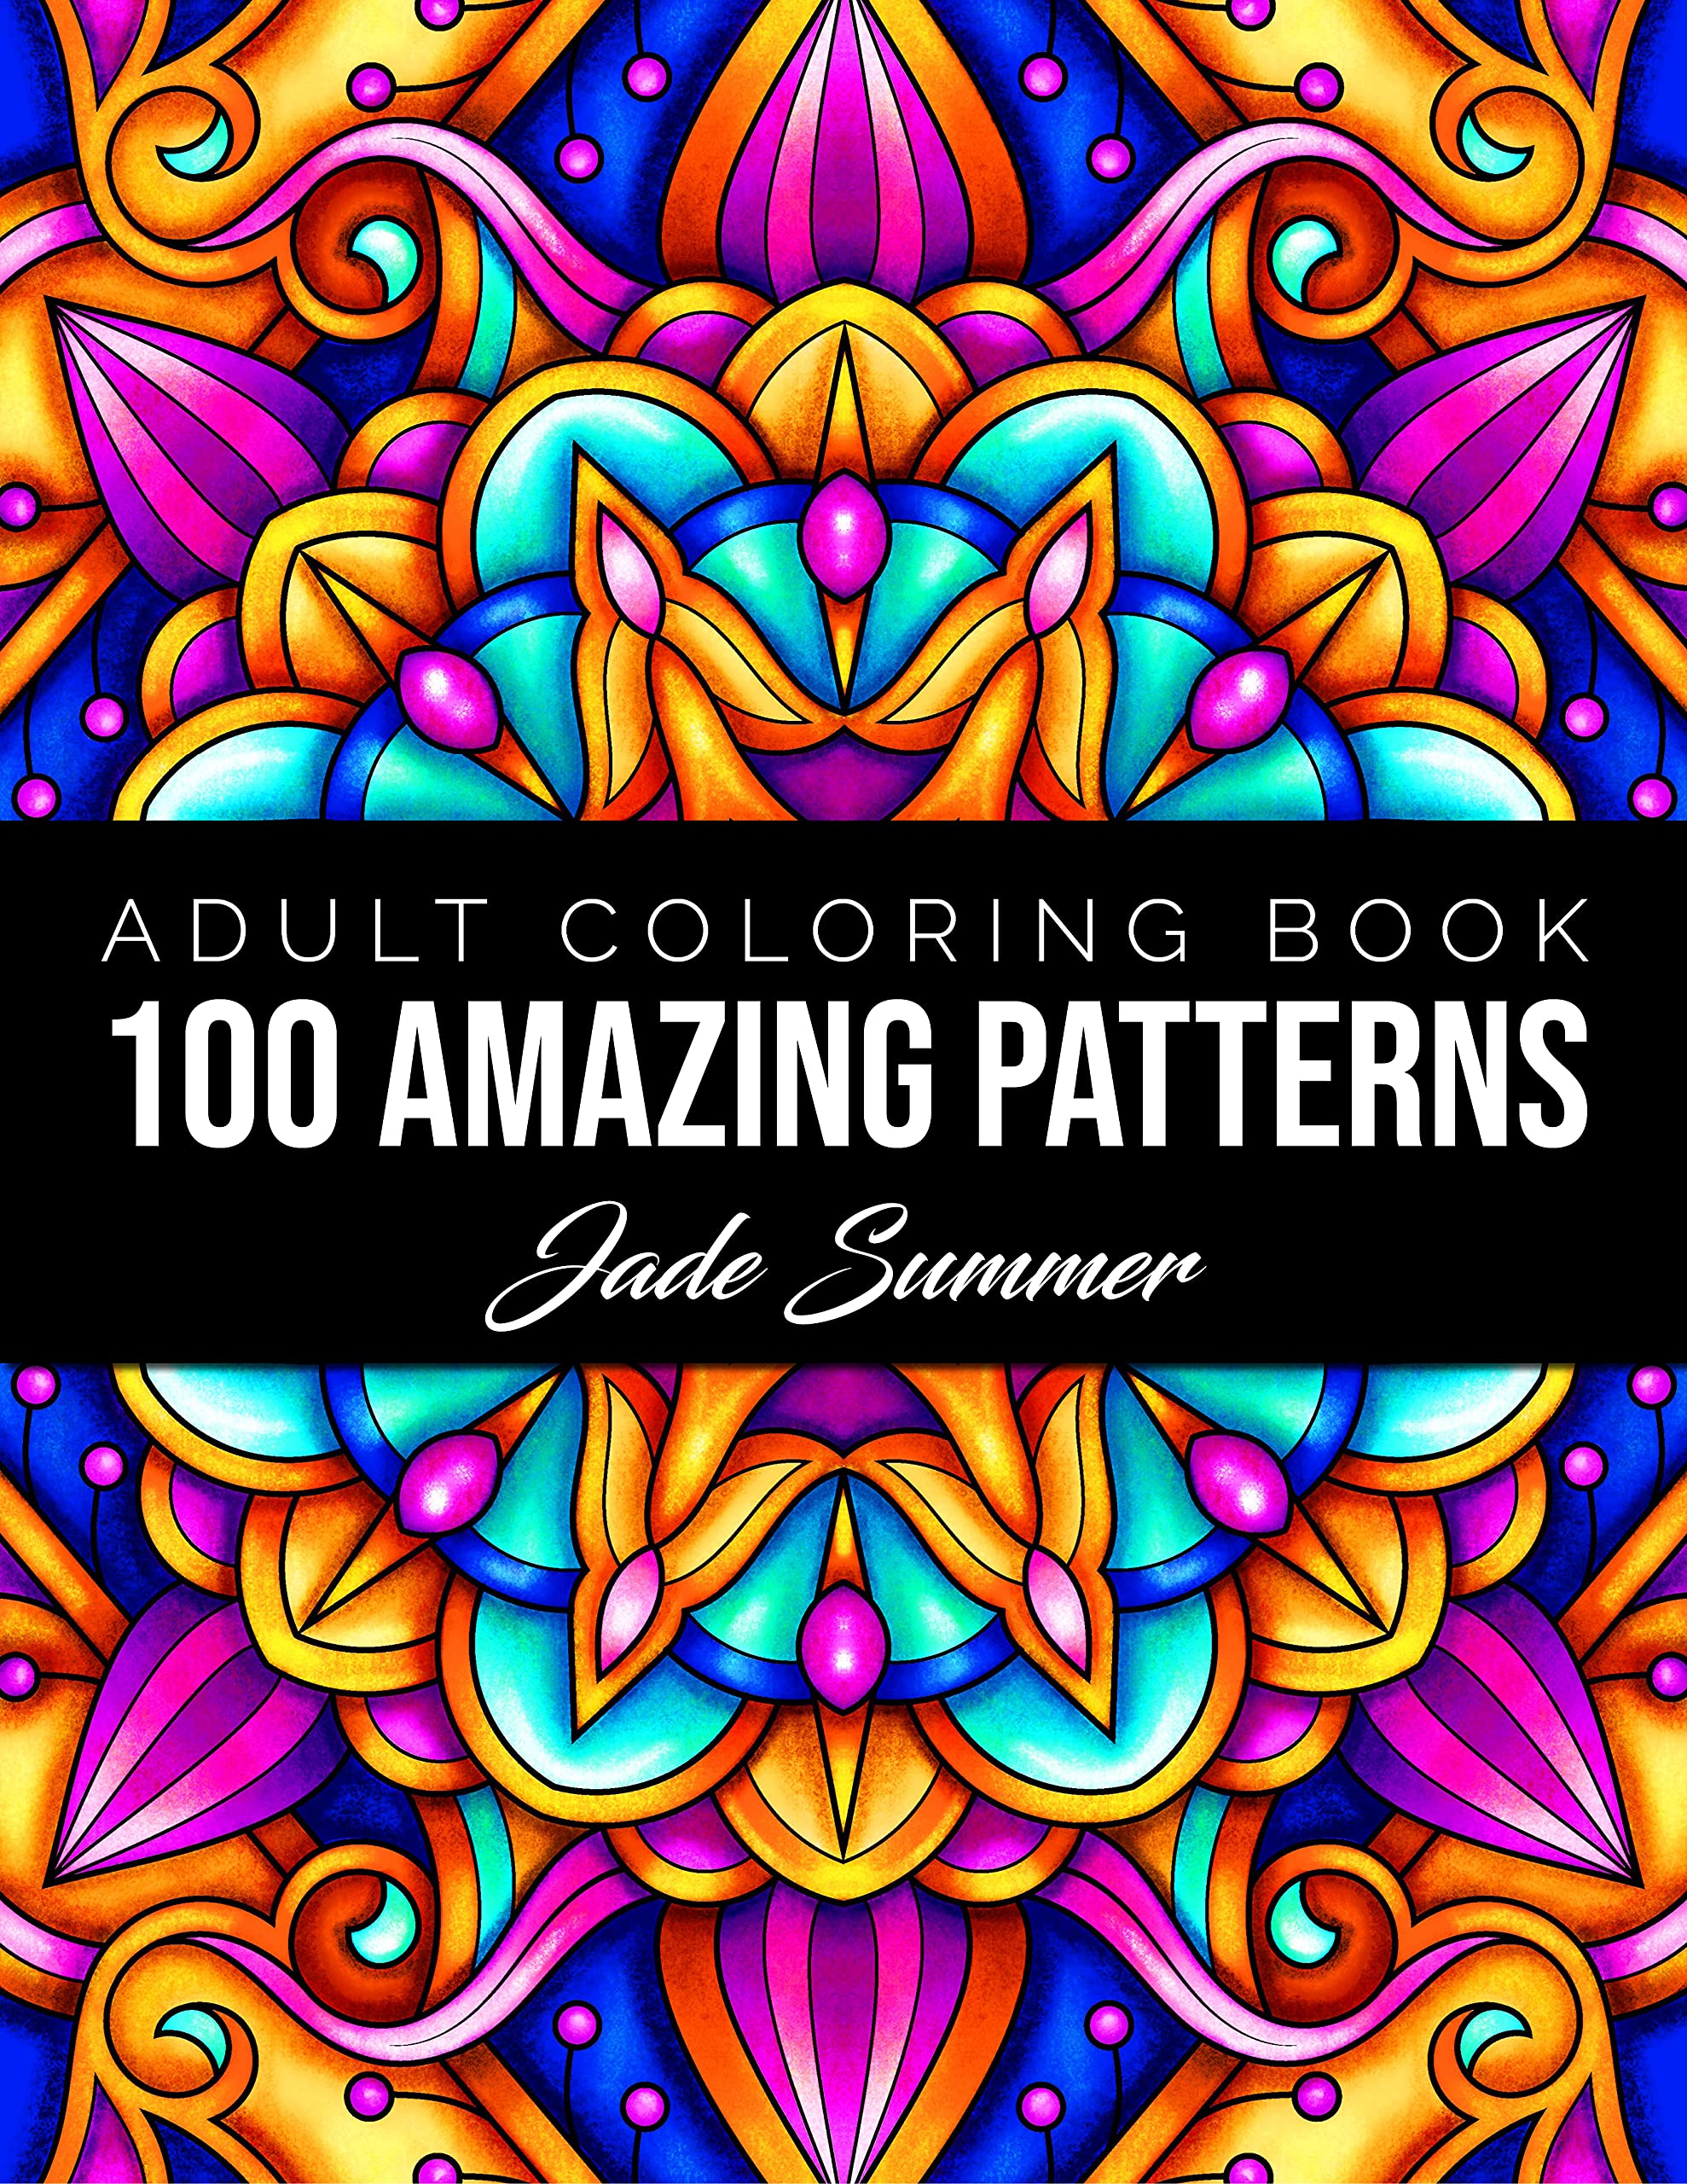 18 Amazing Patterns An Adult Coloring Book with Fun, Easy, and ...